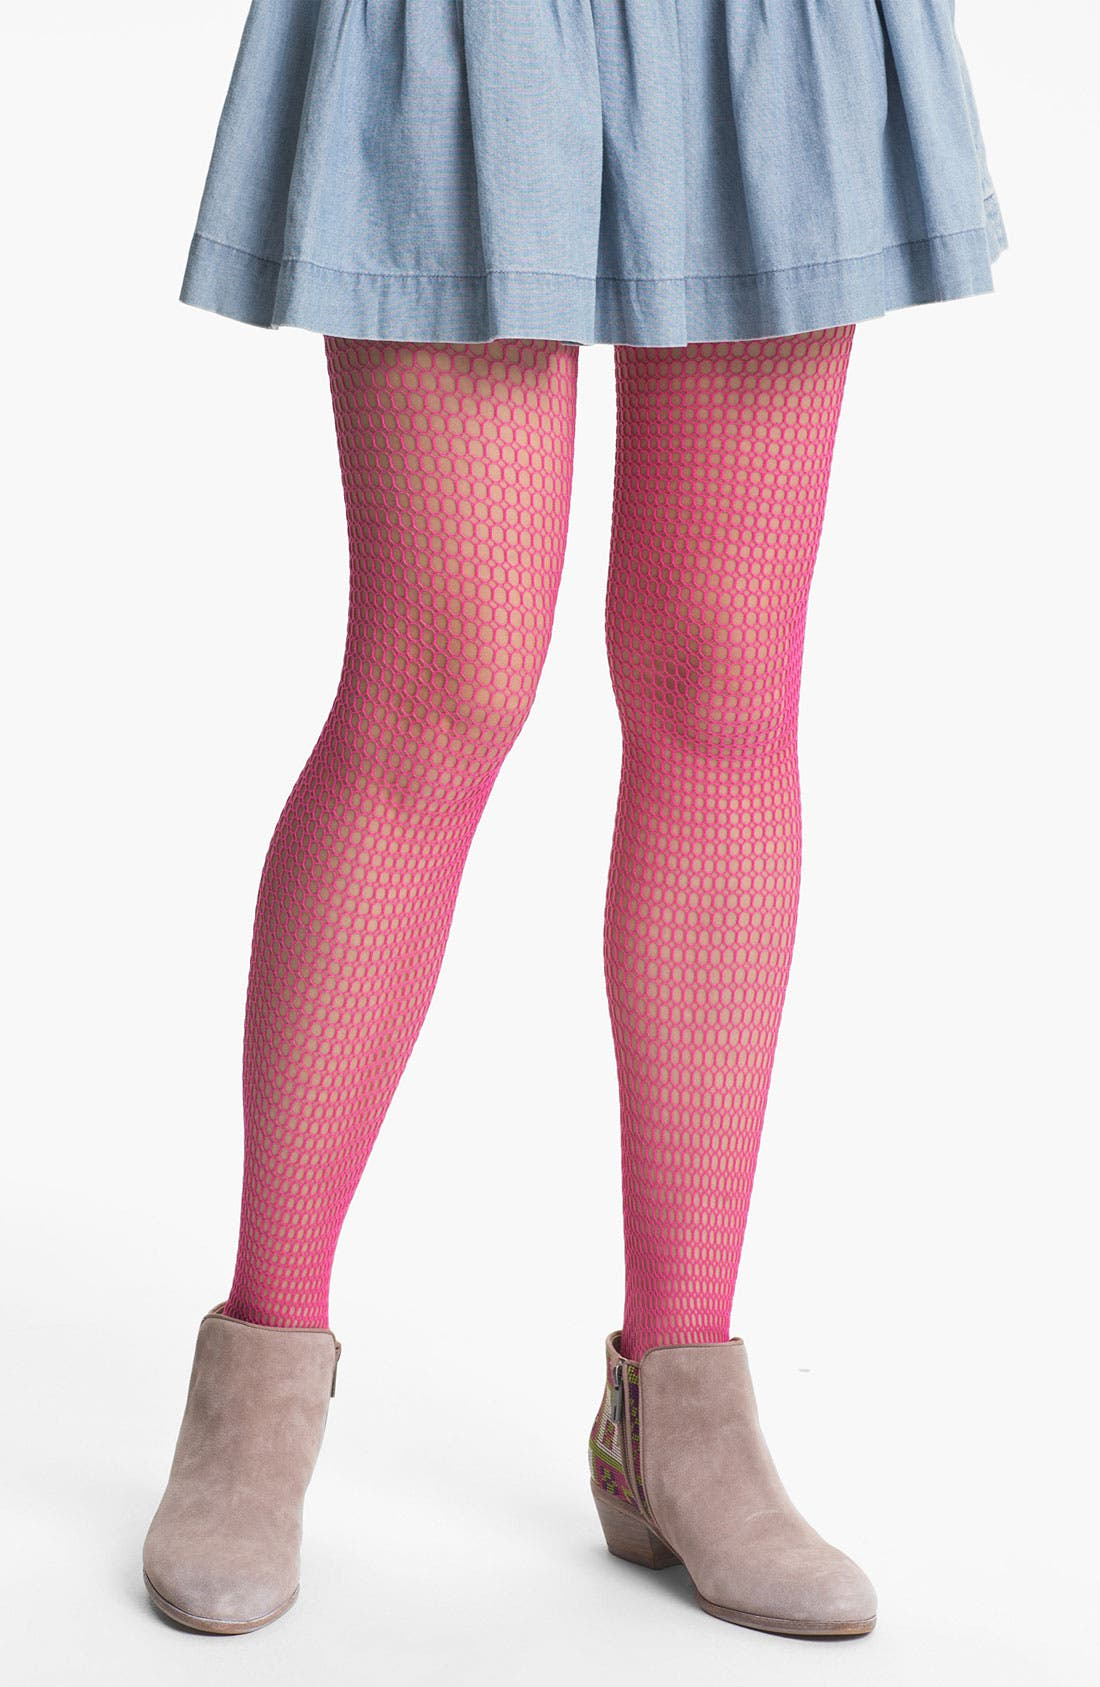 Alternate Image 1 Selected - Hue 'Box Net' Tights